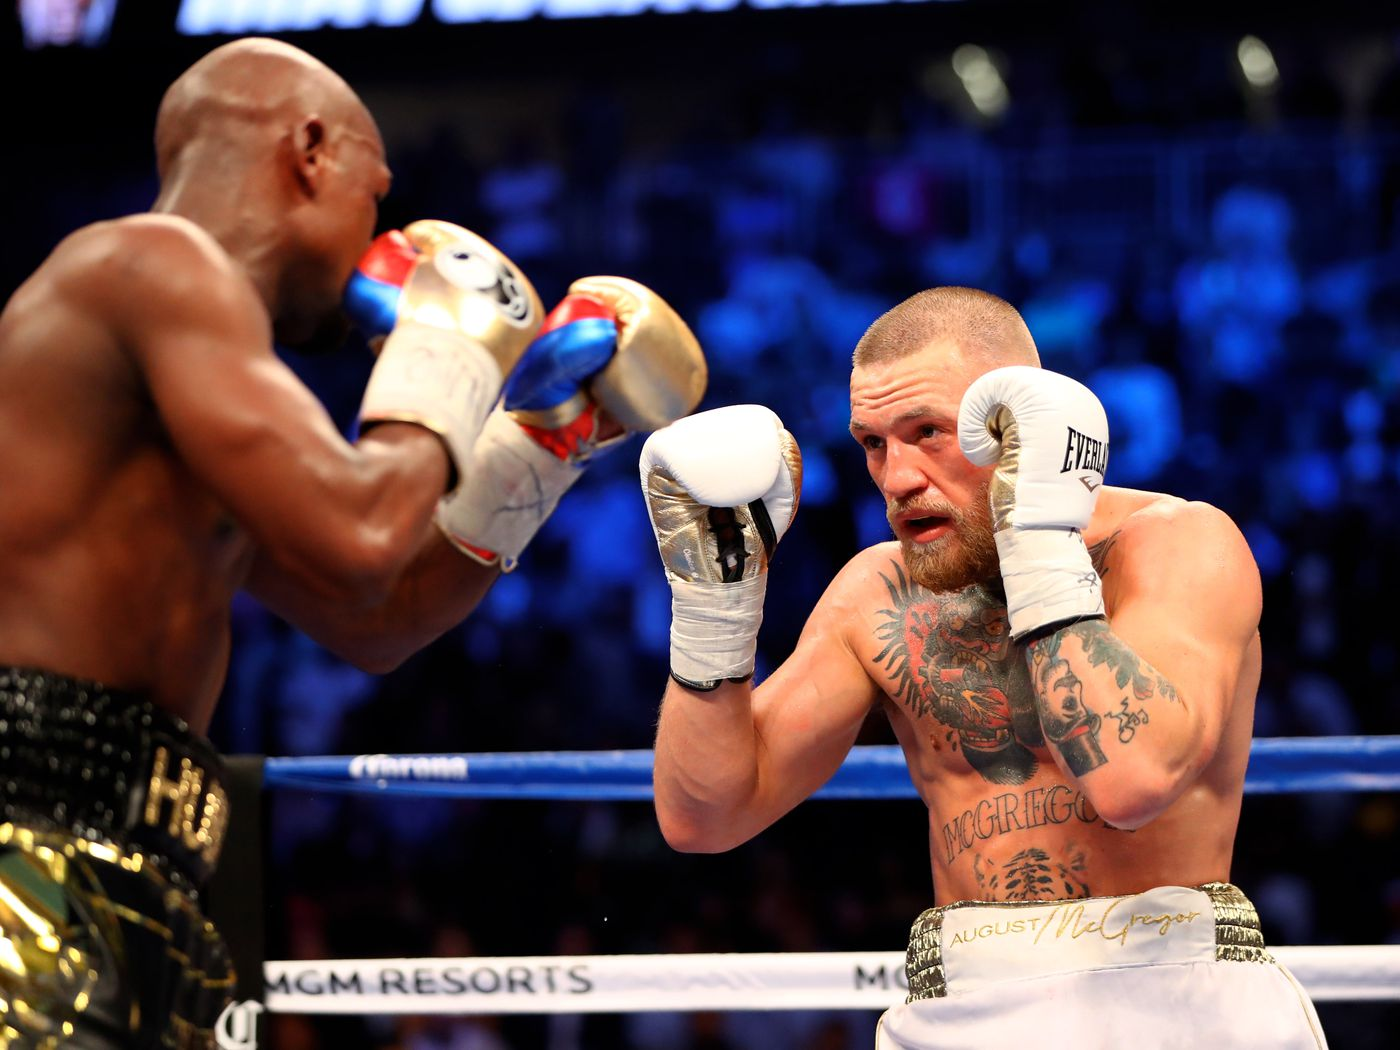 Mayweather vs  McGregor PPV and live-streaming problems lead